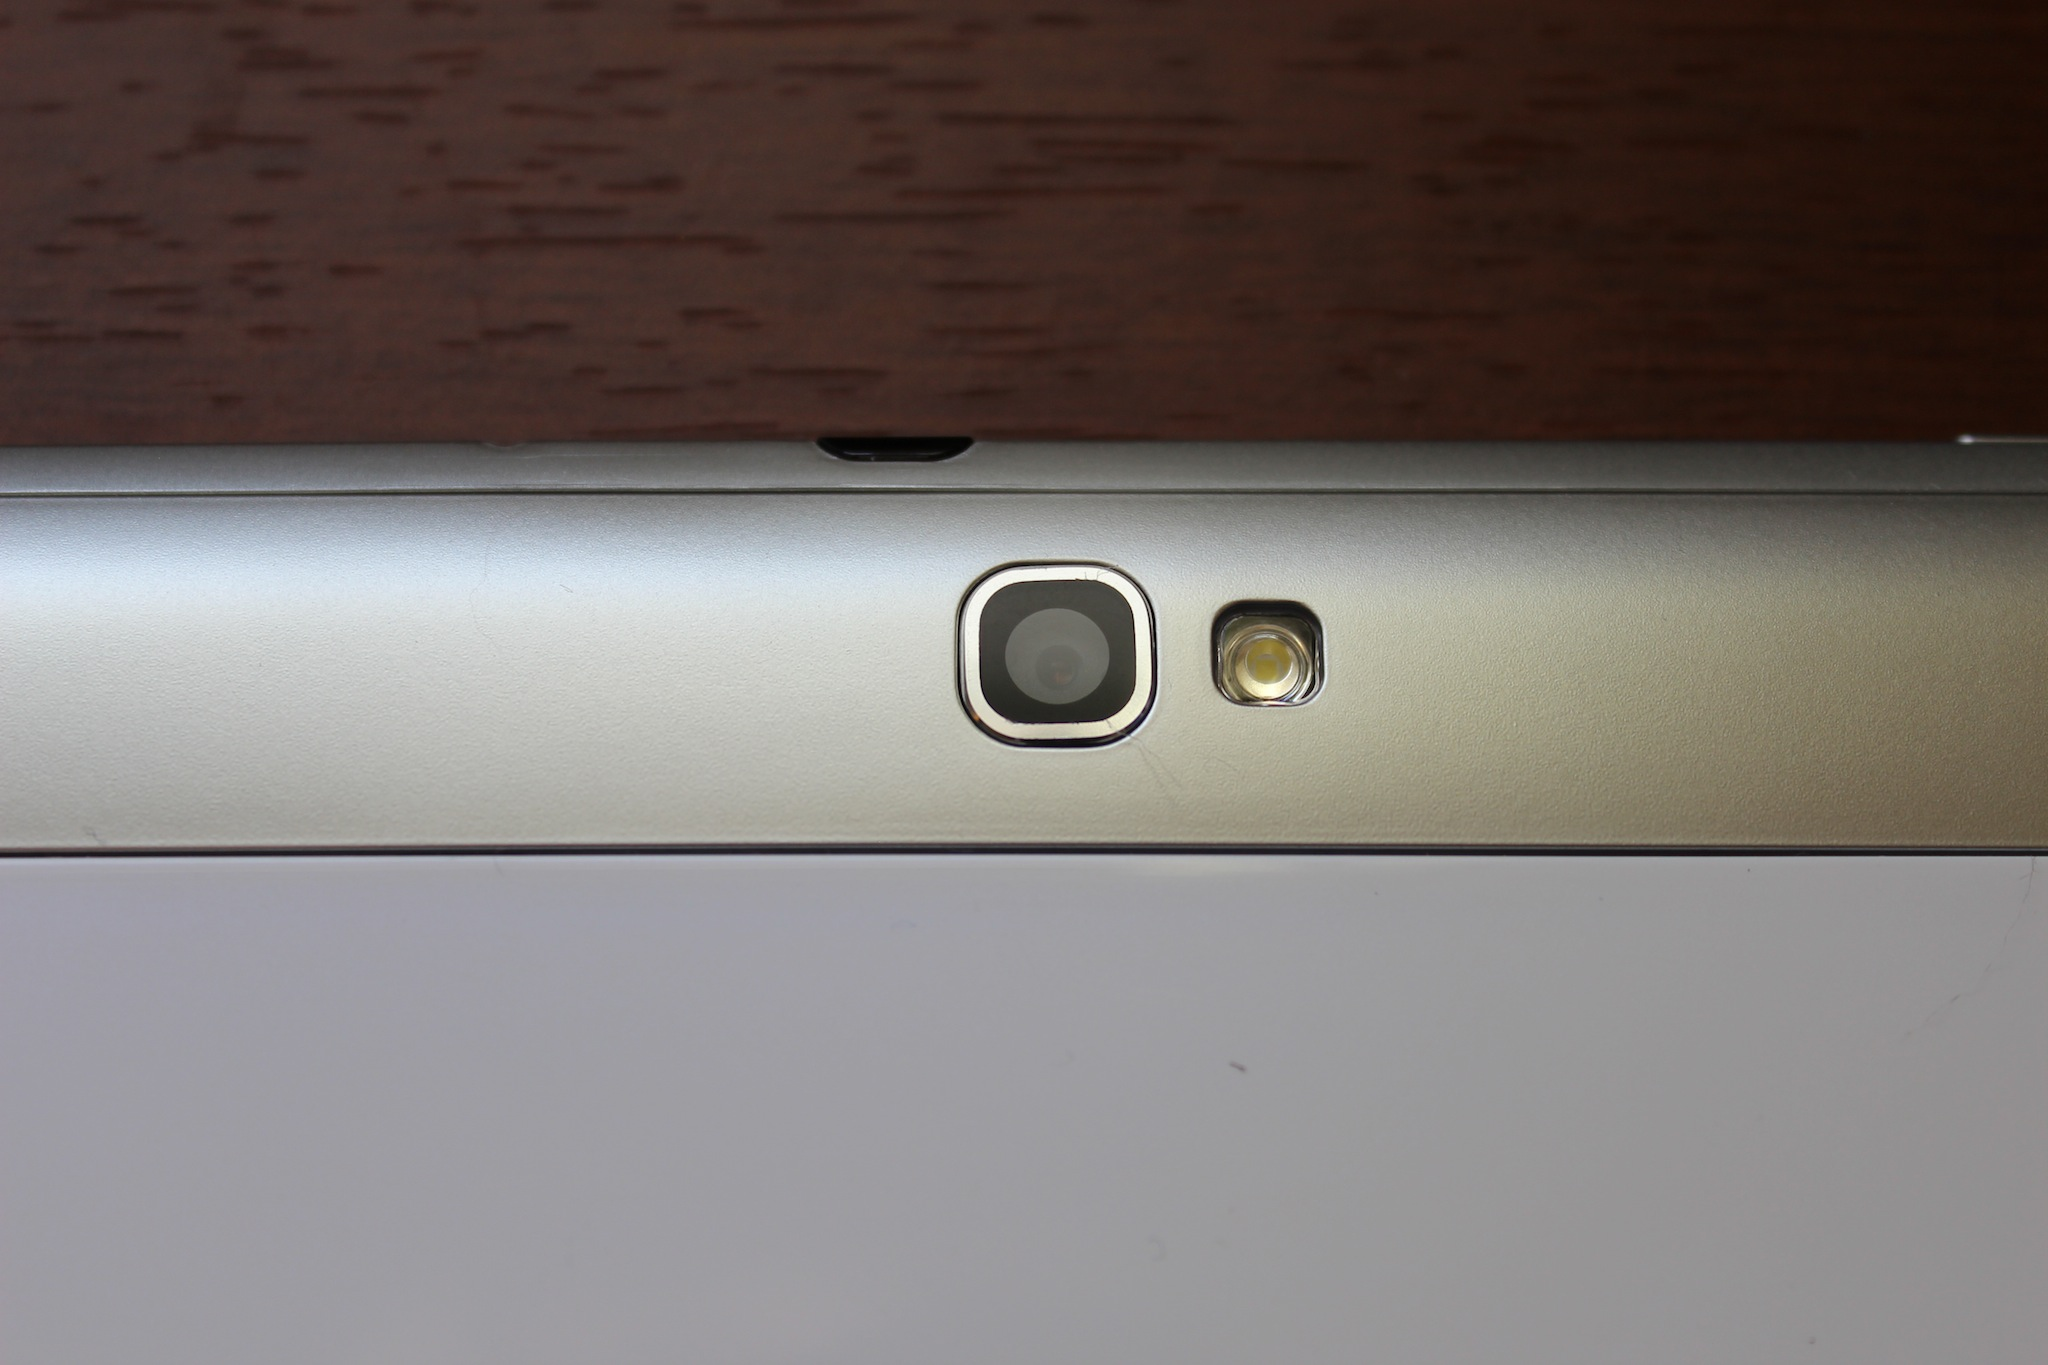 The Note 10.1's rear camera and flash.